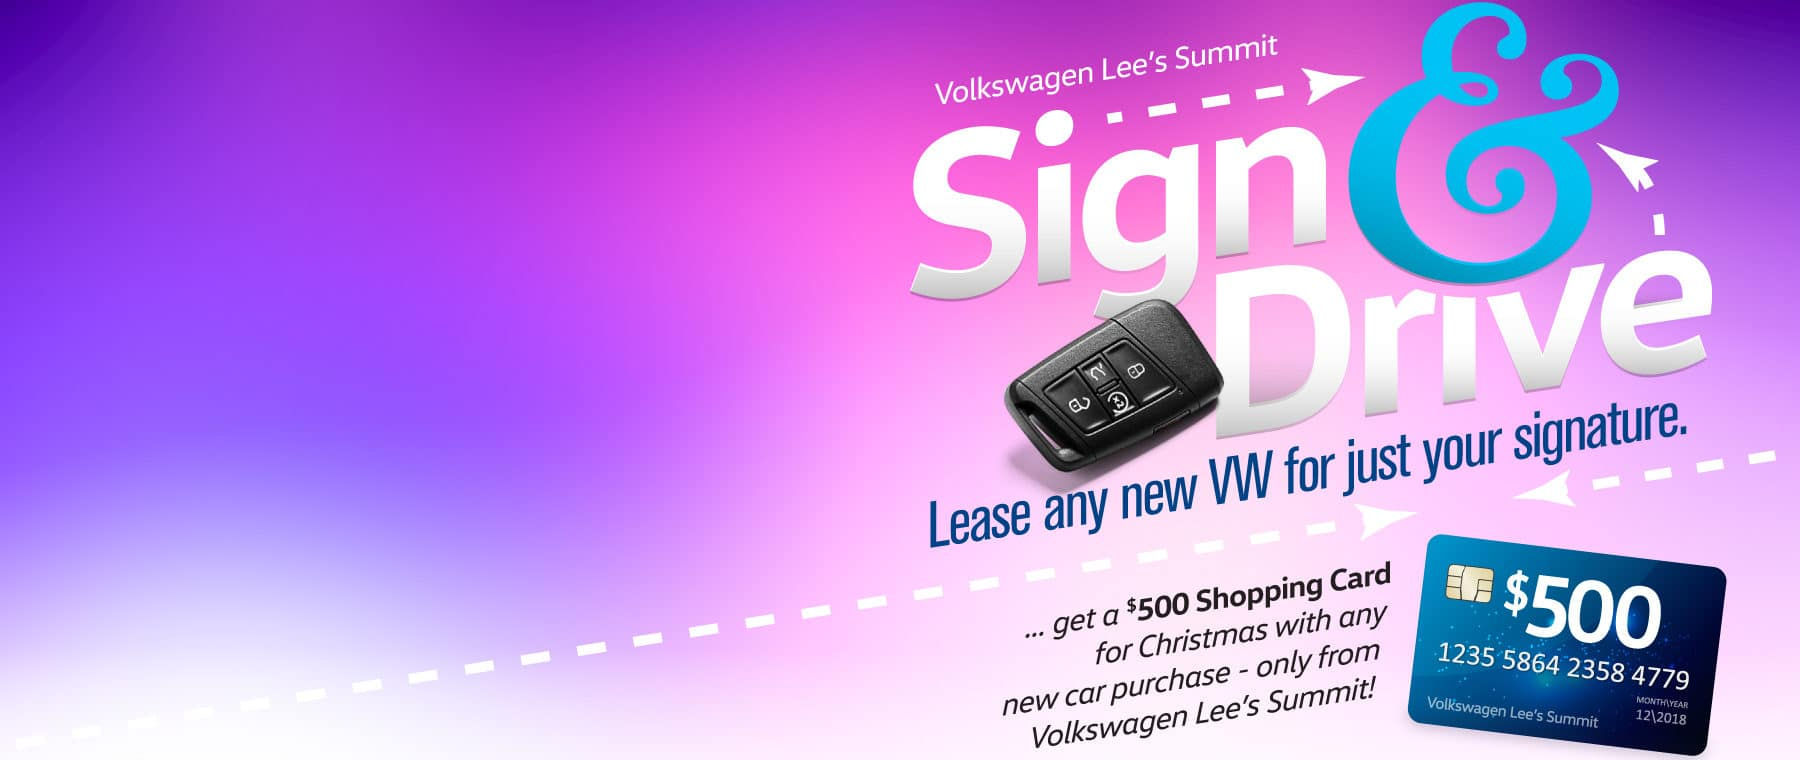 Lease any new car for just your signature at VW Lee's Summit!